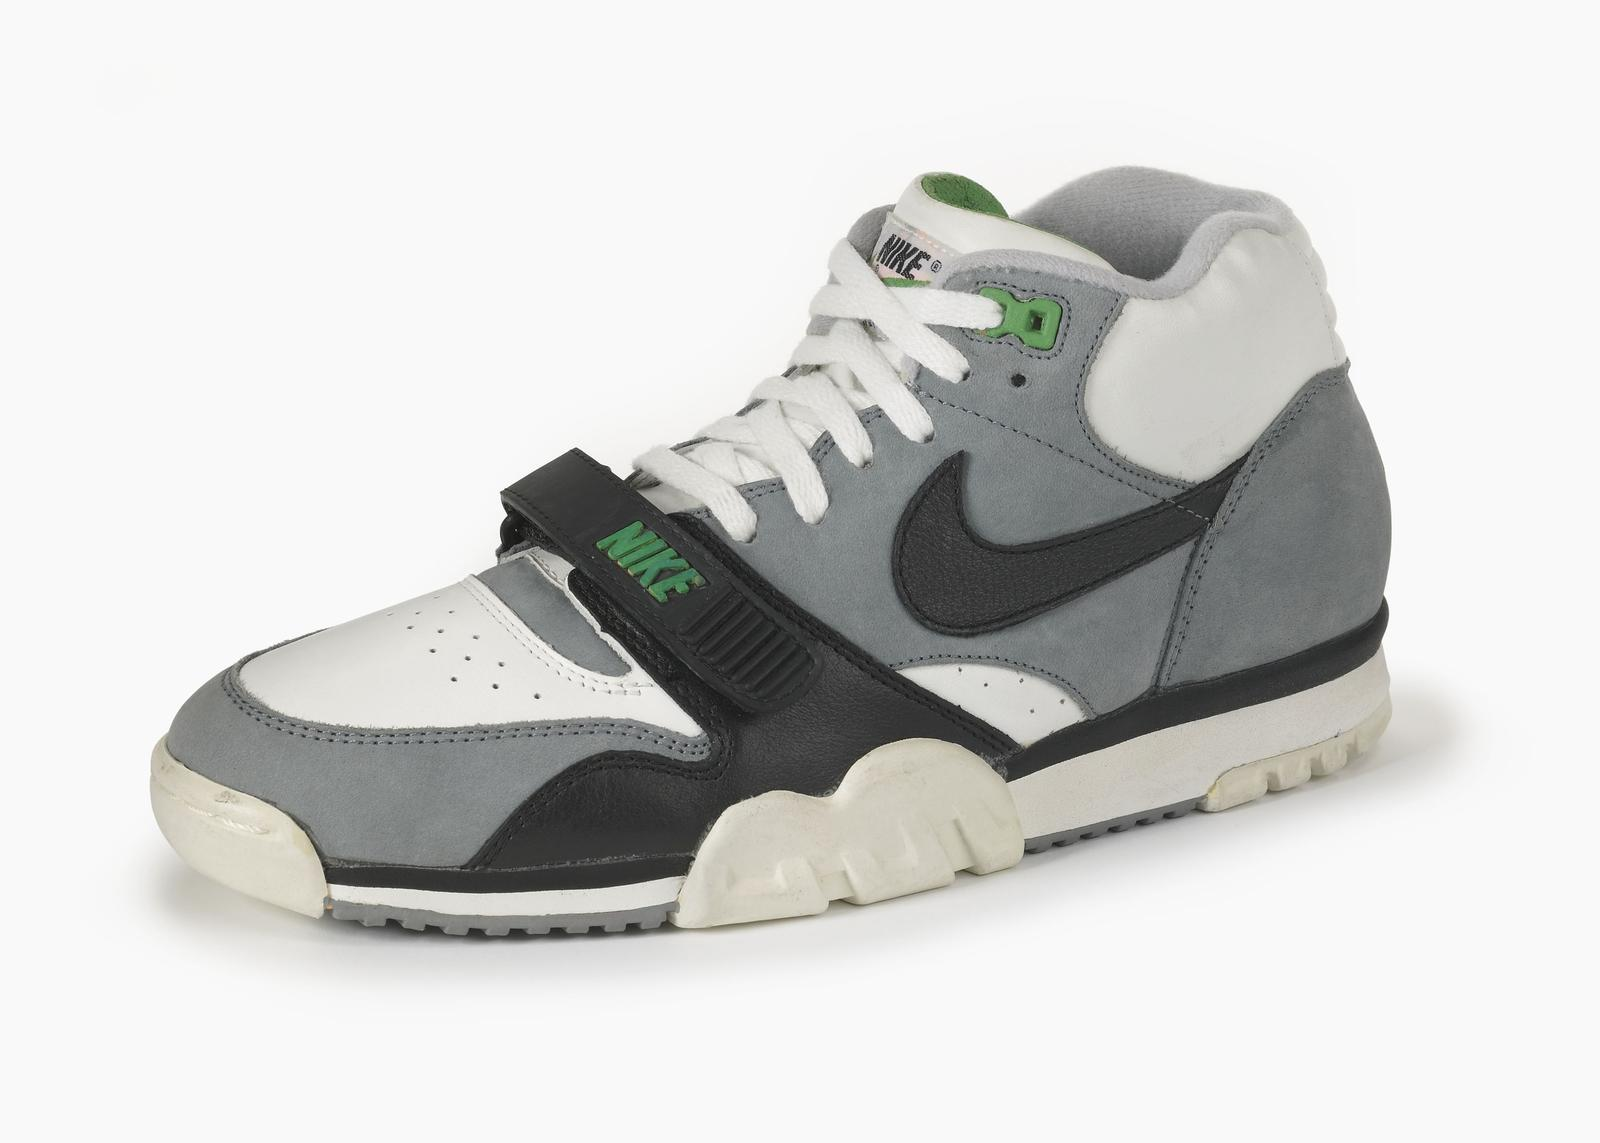 b3d2046ded8 Nike Air Trainer 1  Through Defiance